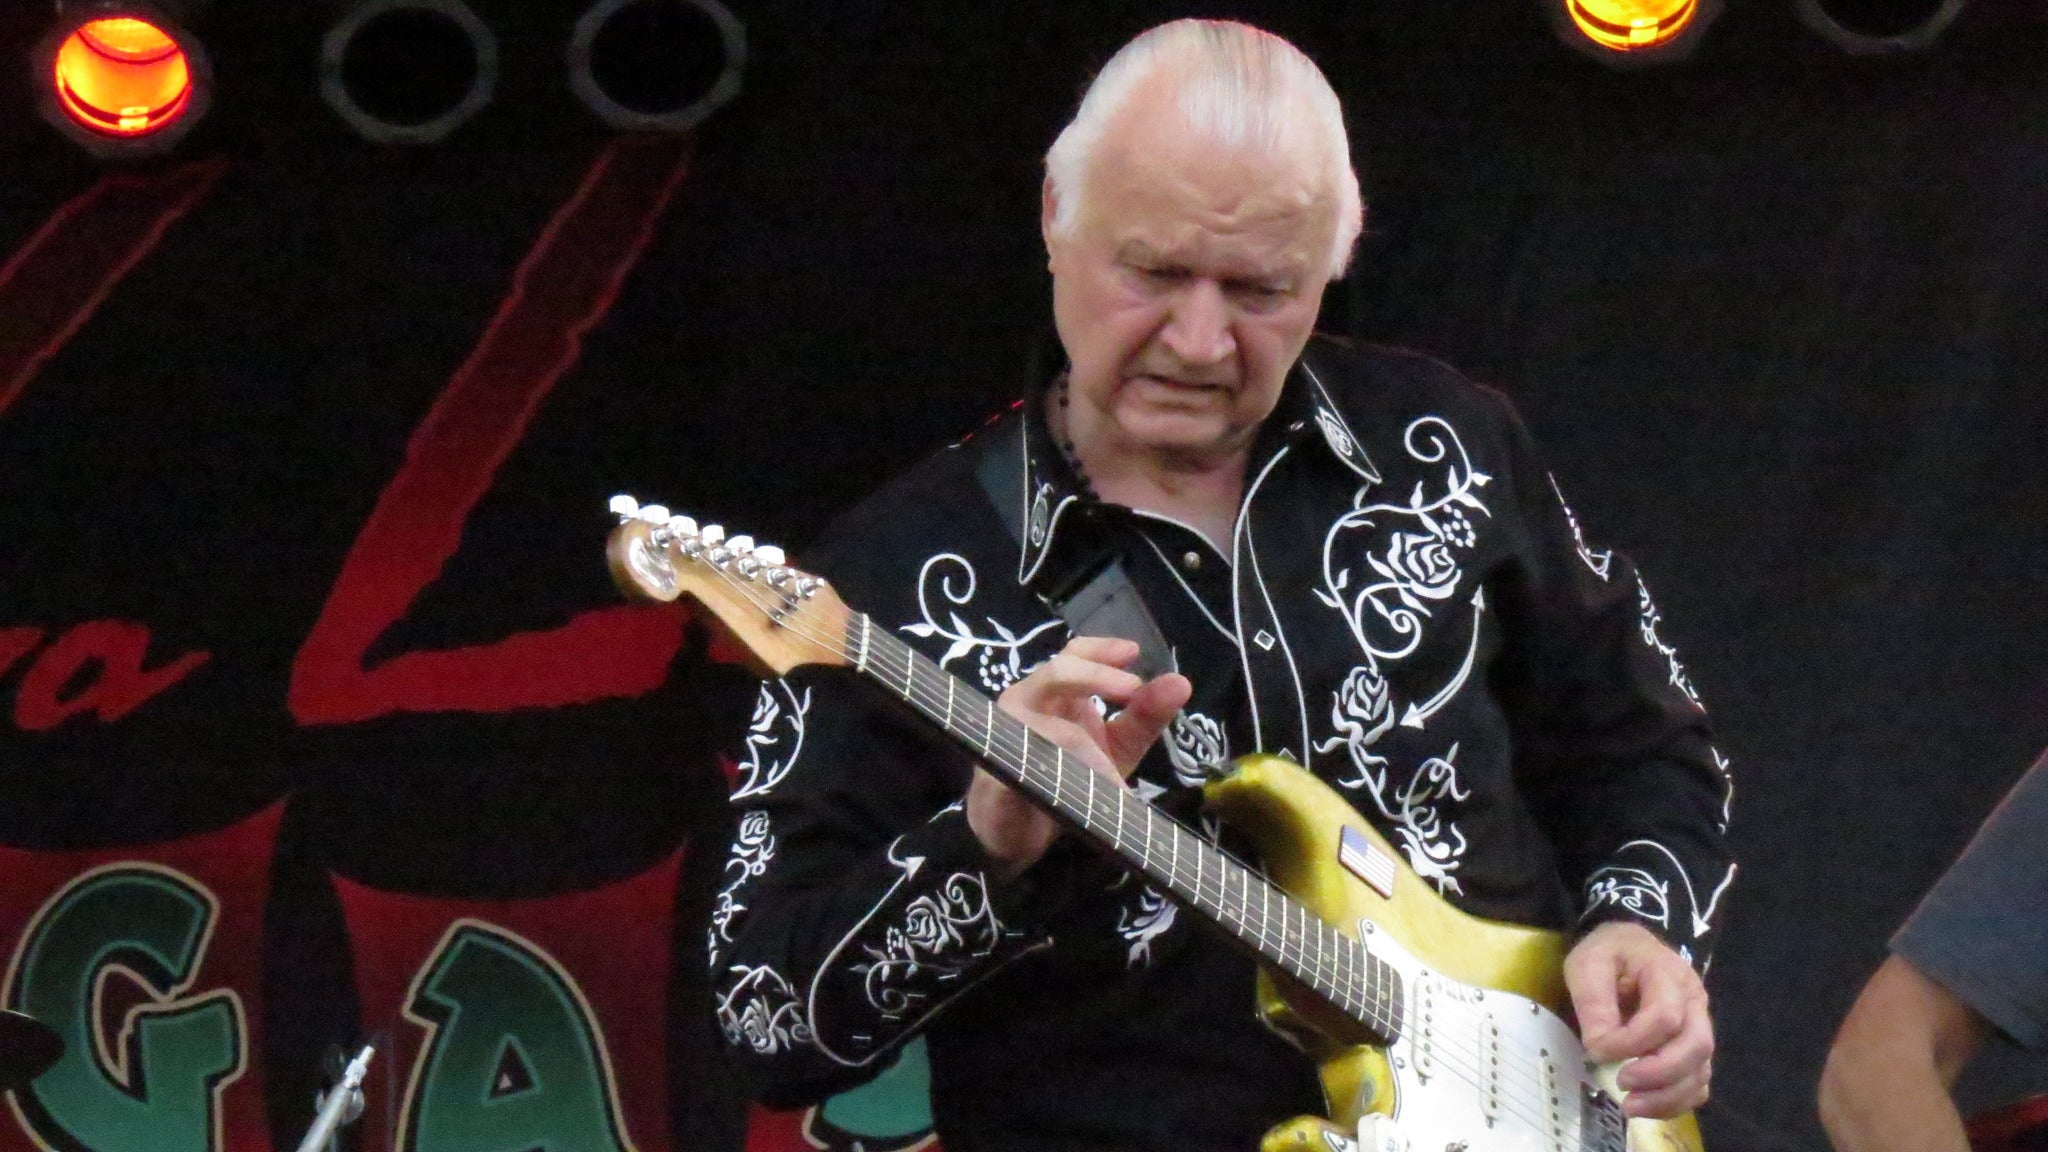 Dick Dale at High Noon Saloon